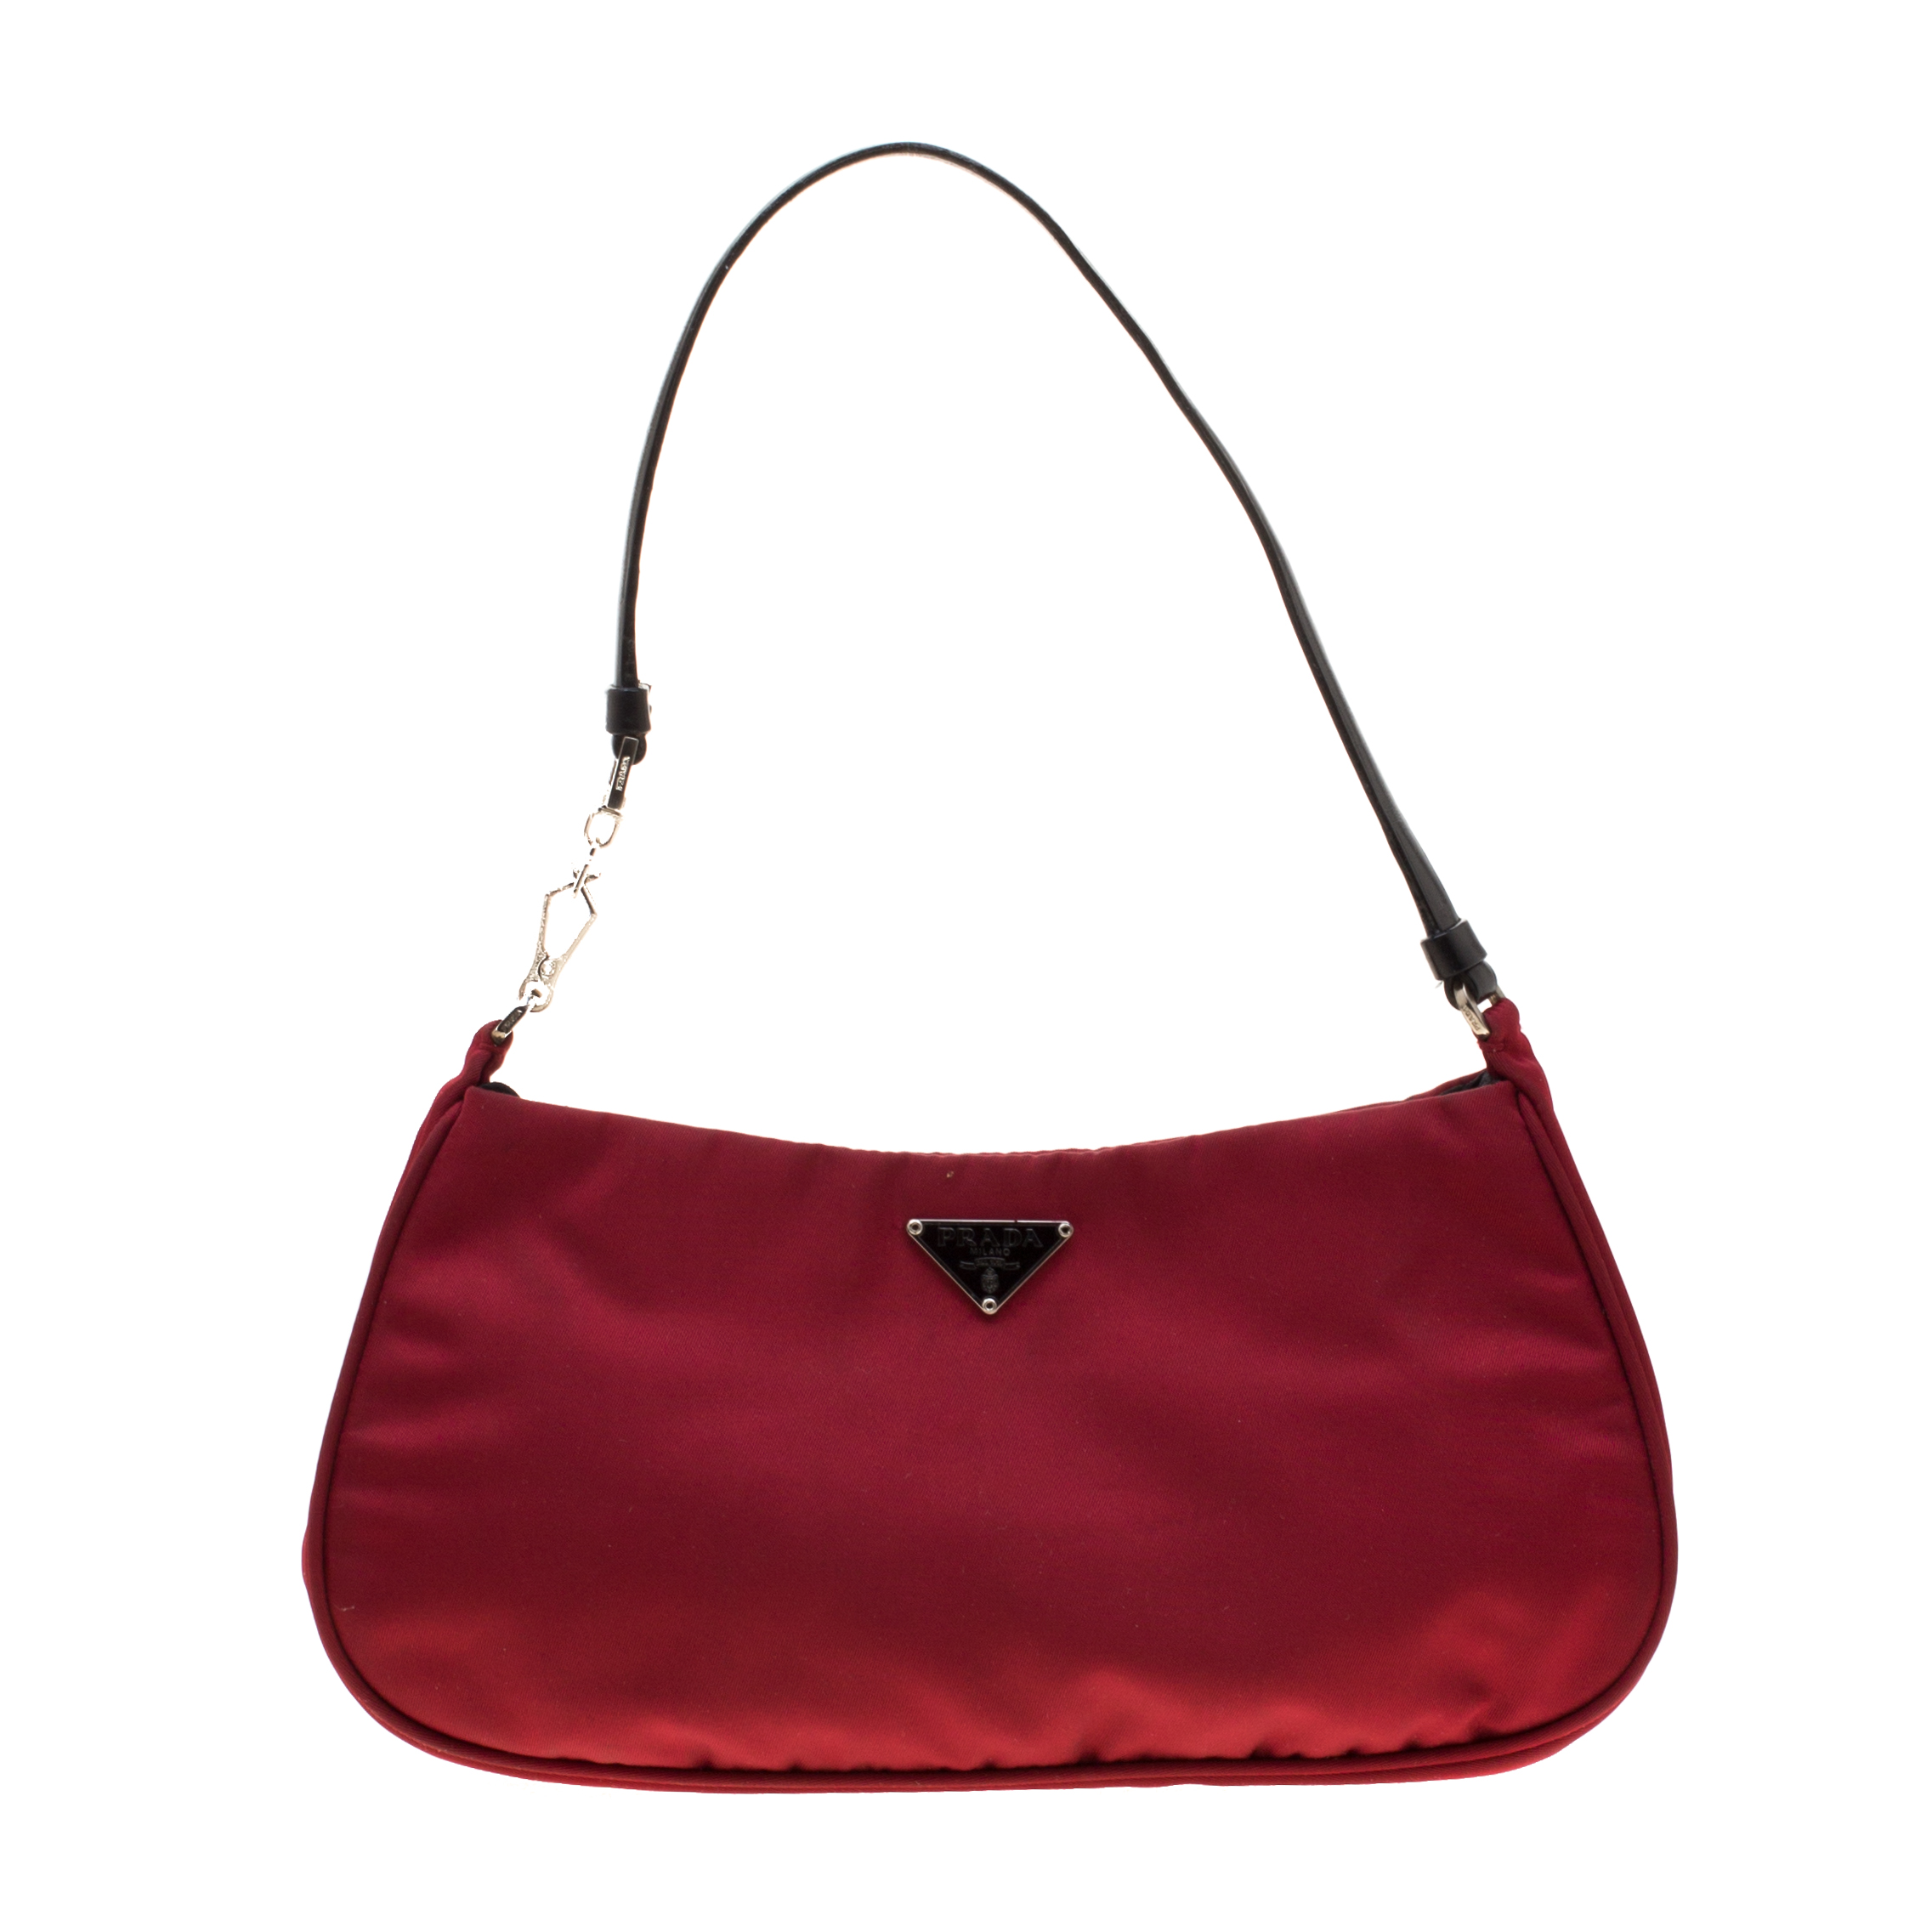 7893c3955b96 Buy Prada Red Nylon Shoulder Bag 186899 at best price | TLC